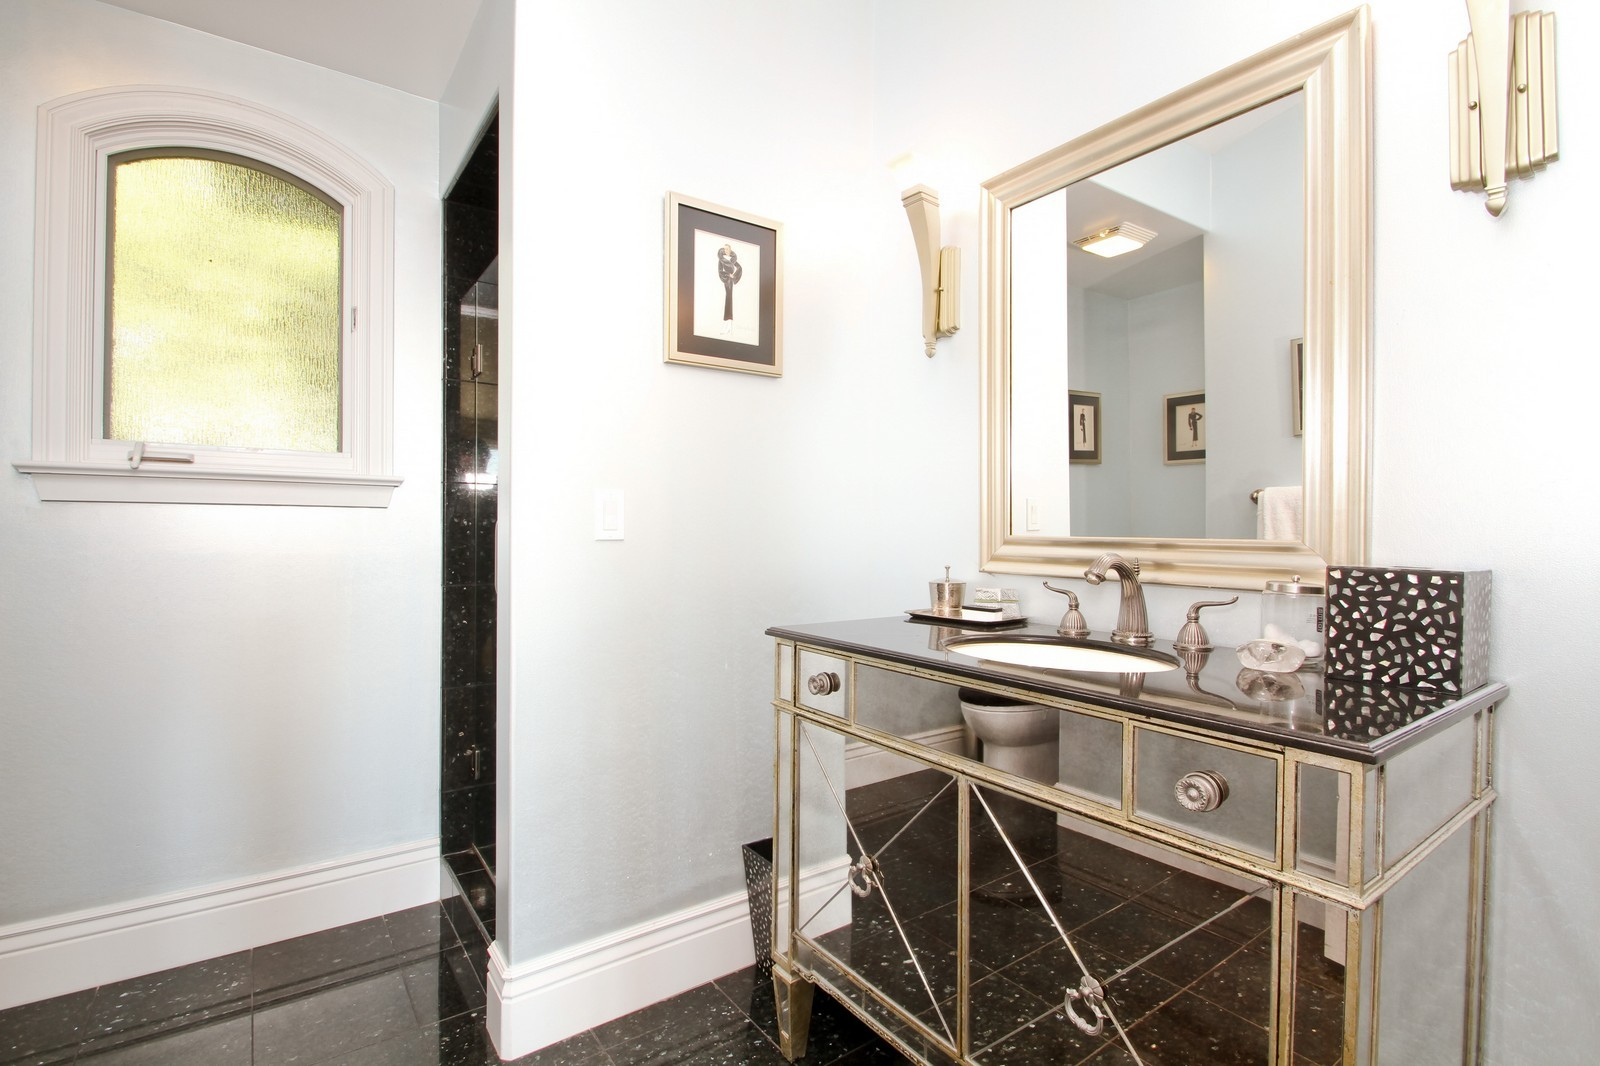 Real Estate Photography - 73 Upper Toyon Drive, Kentfield, CA, 94904 - Bathroom